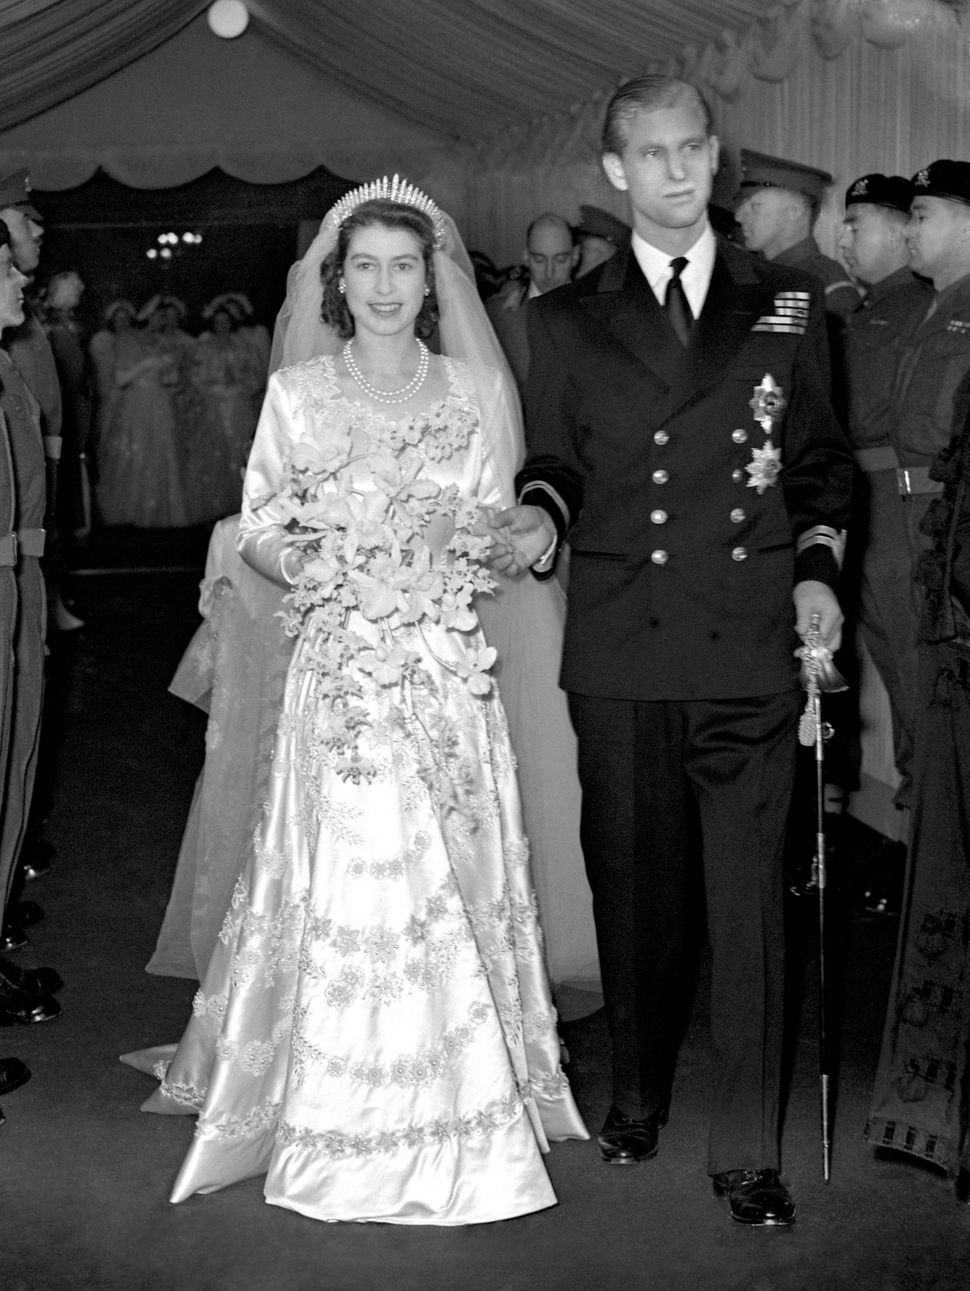 Princess Elizabeth and Philip Mountbatten leaving Westminster Abbey following their wedding ceremony in 1947